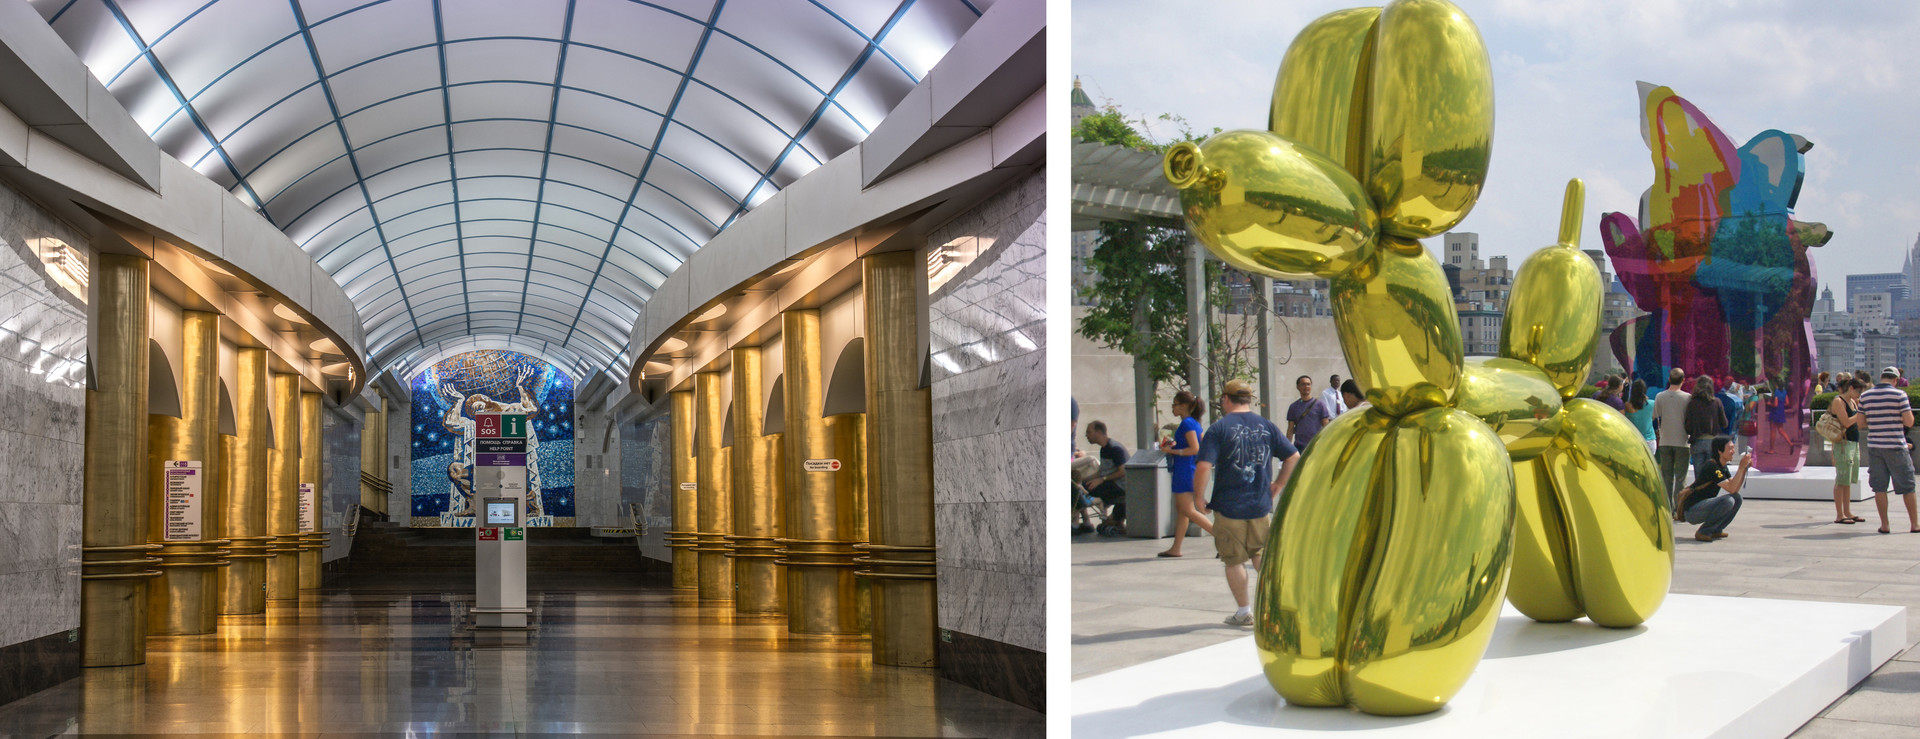 Gold columns of Mezhdunarodnaya station remind locals of balloon dogs by American artist Jeff Koons